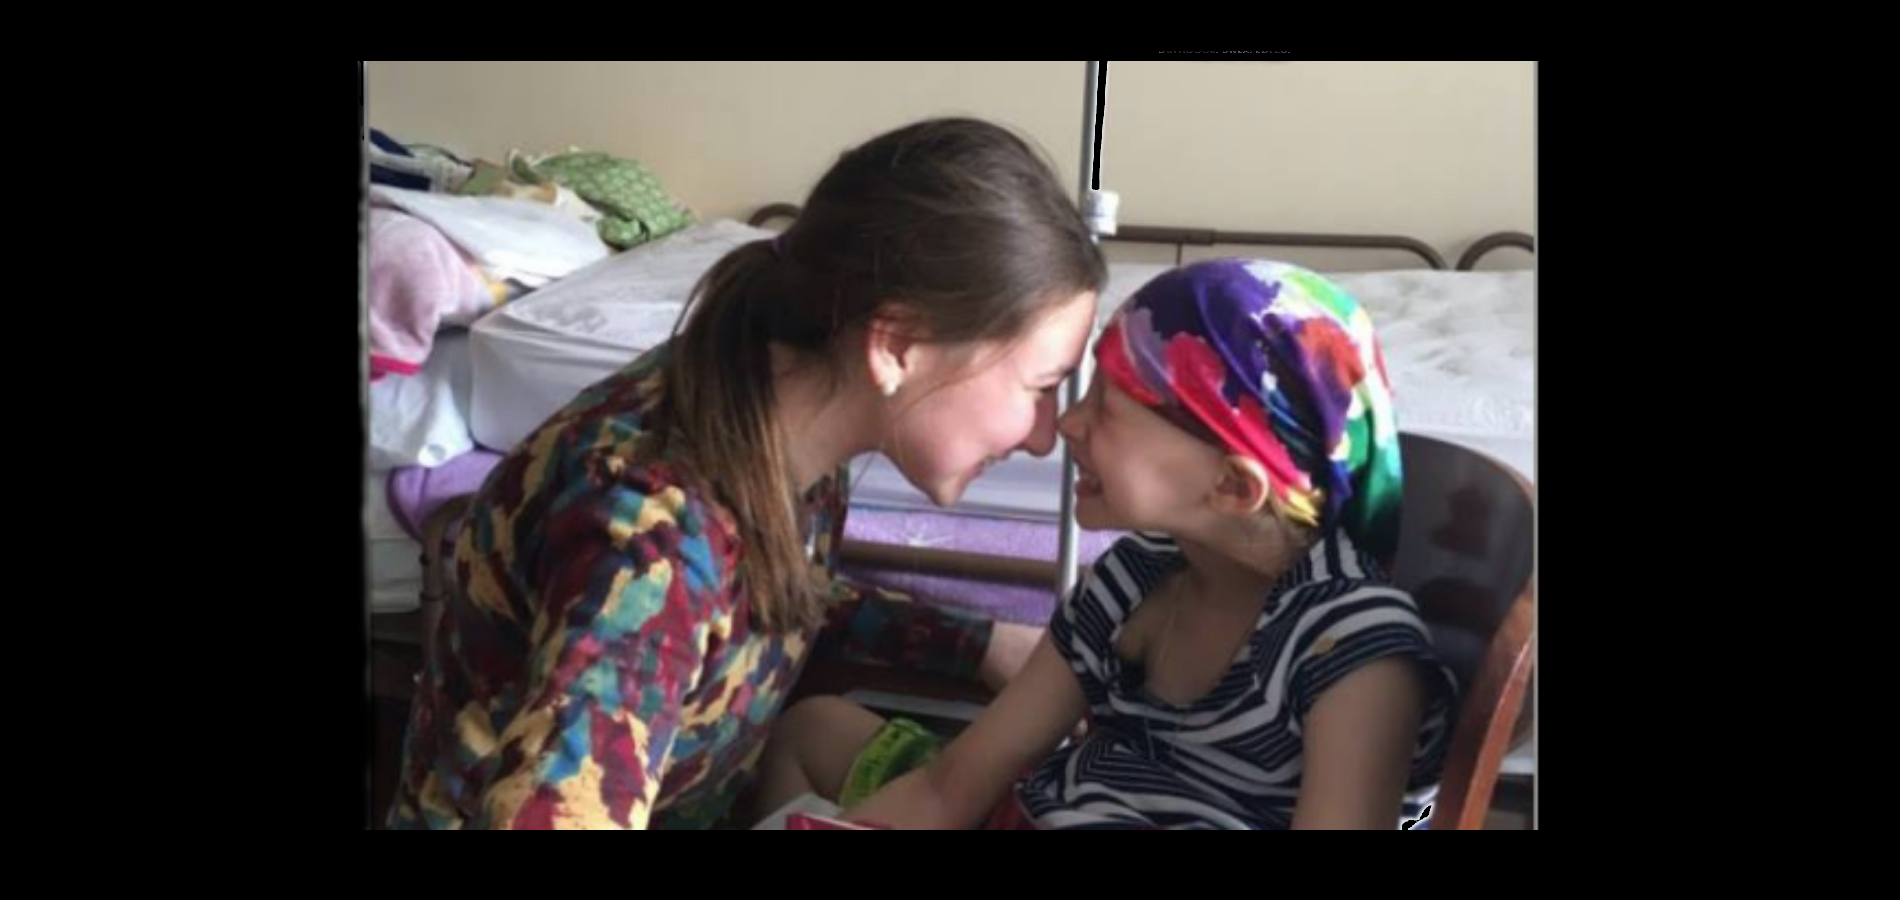 The Orthodox Jewish Volunteers Who Help A Child With Cancer